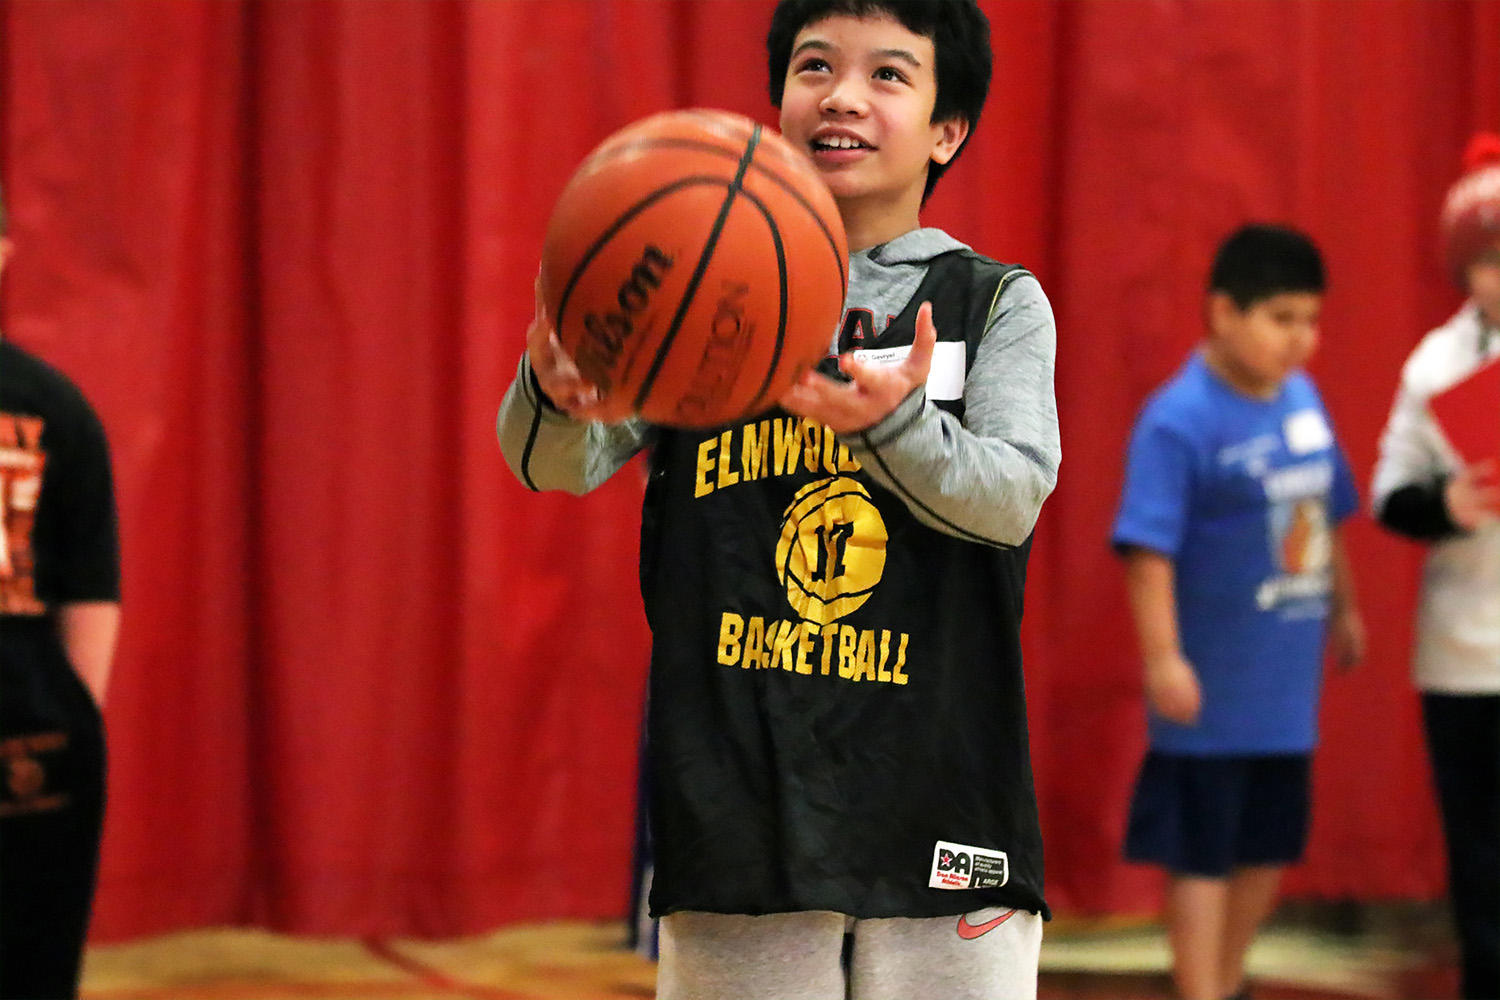 District 401 student competes in the Special Olympics basketball skills event.